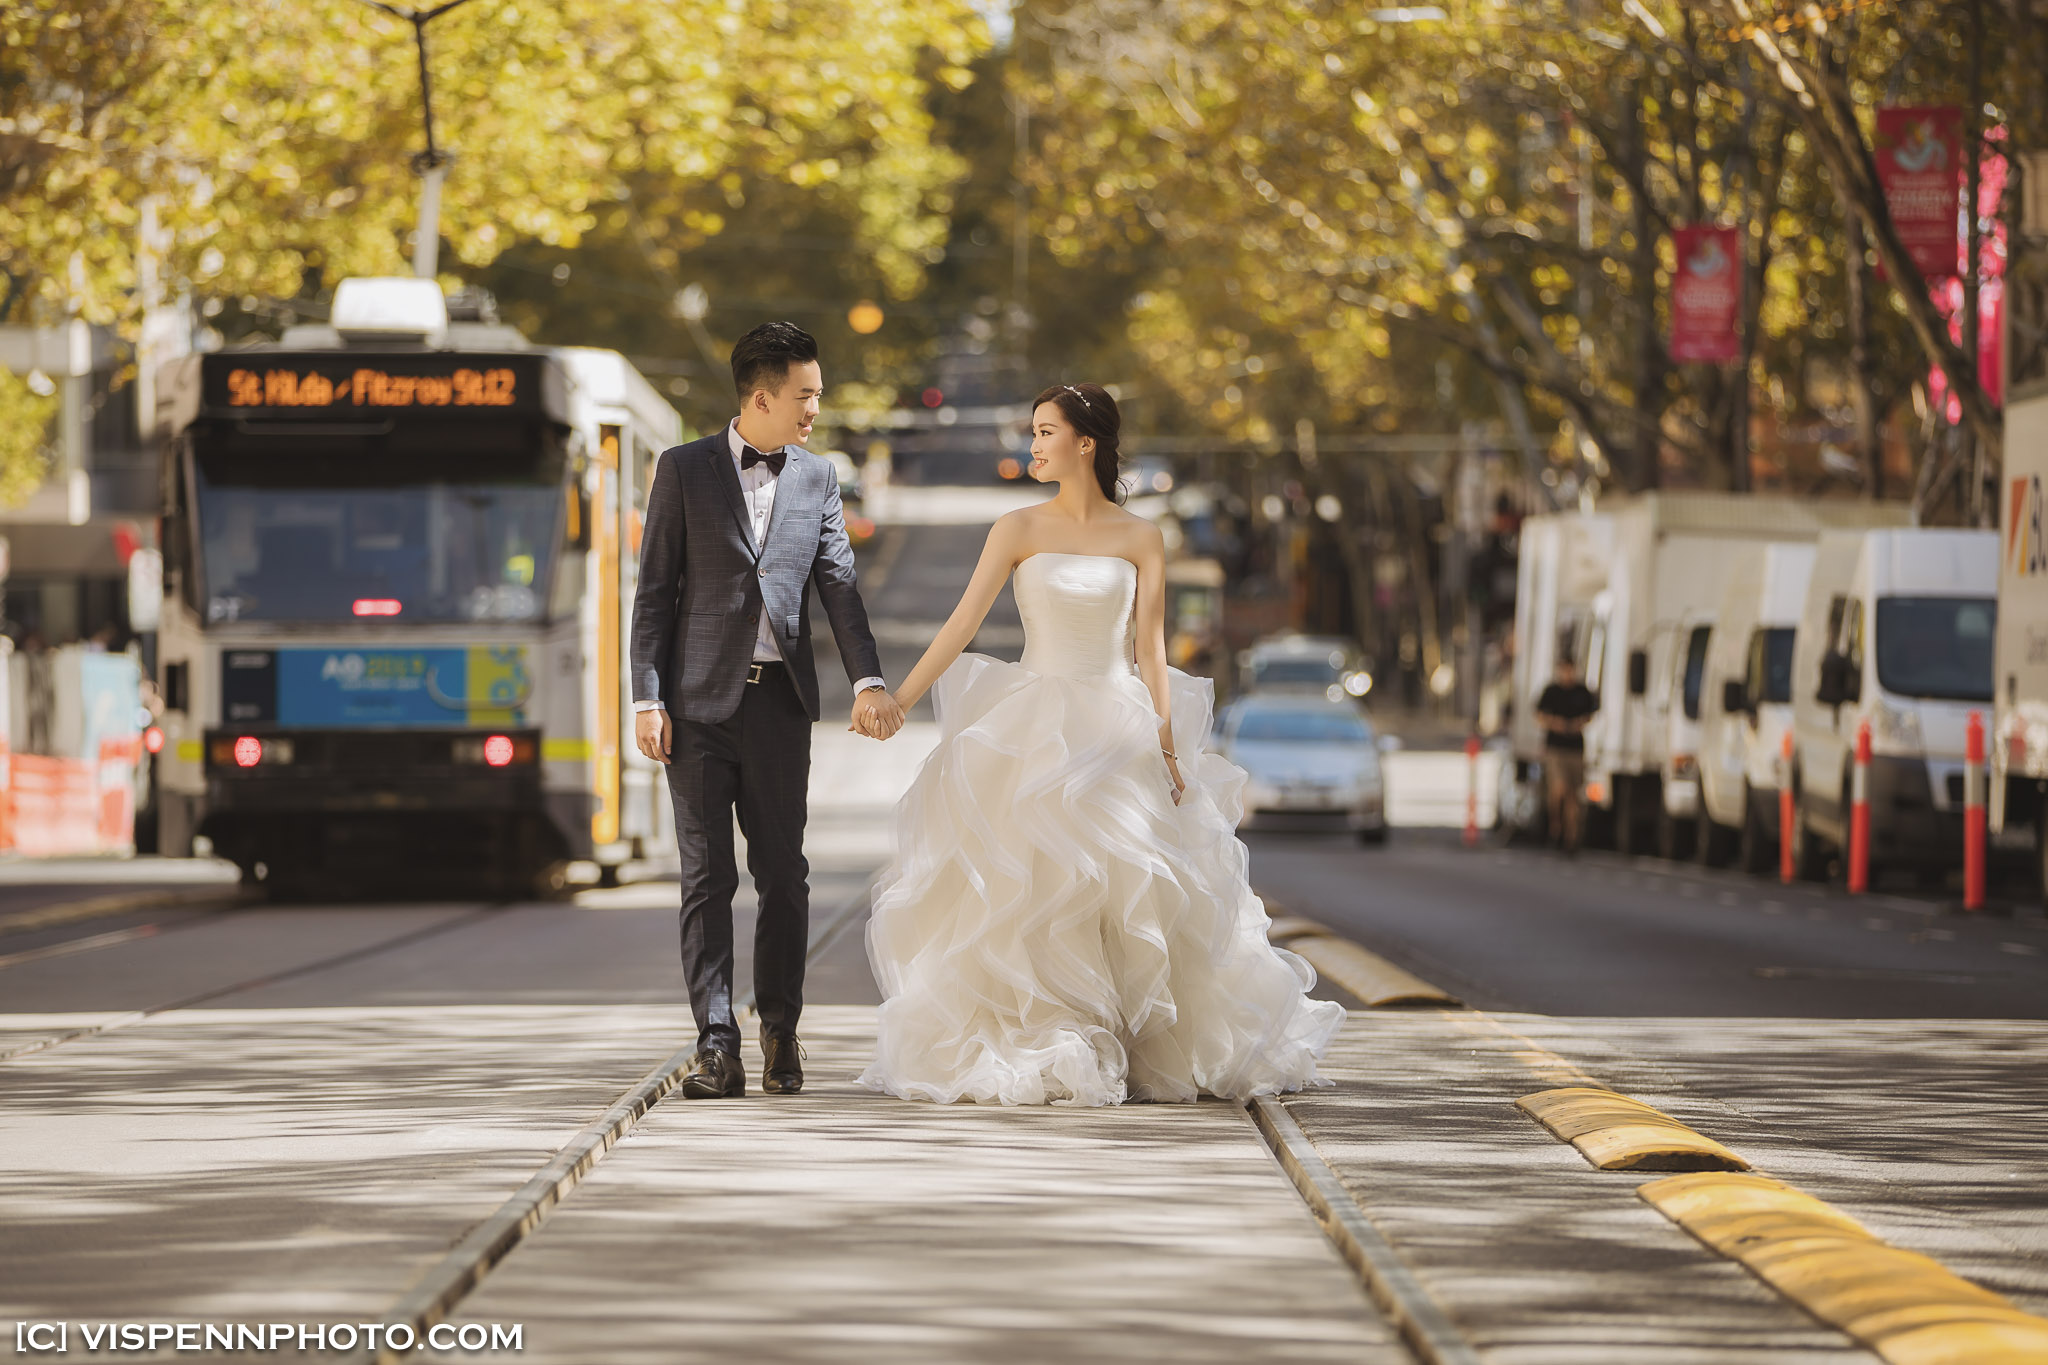 PRE WEDDING Photography Melbourne AndyCHEN 2796 1DX ZHPENN